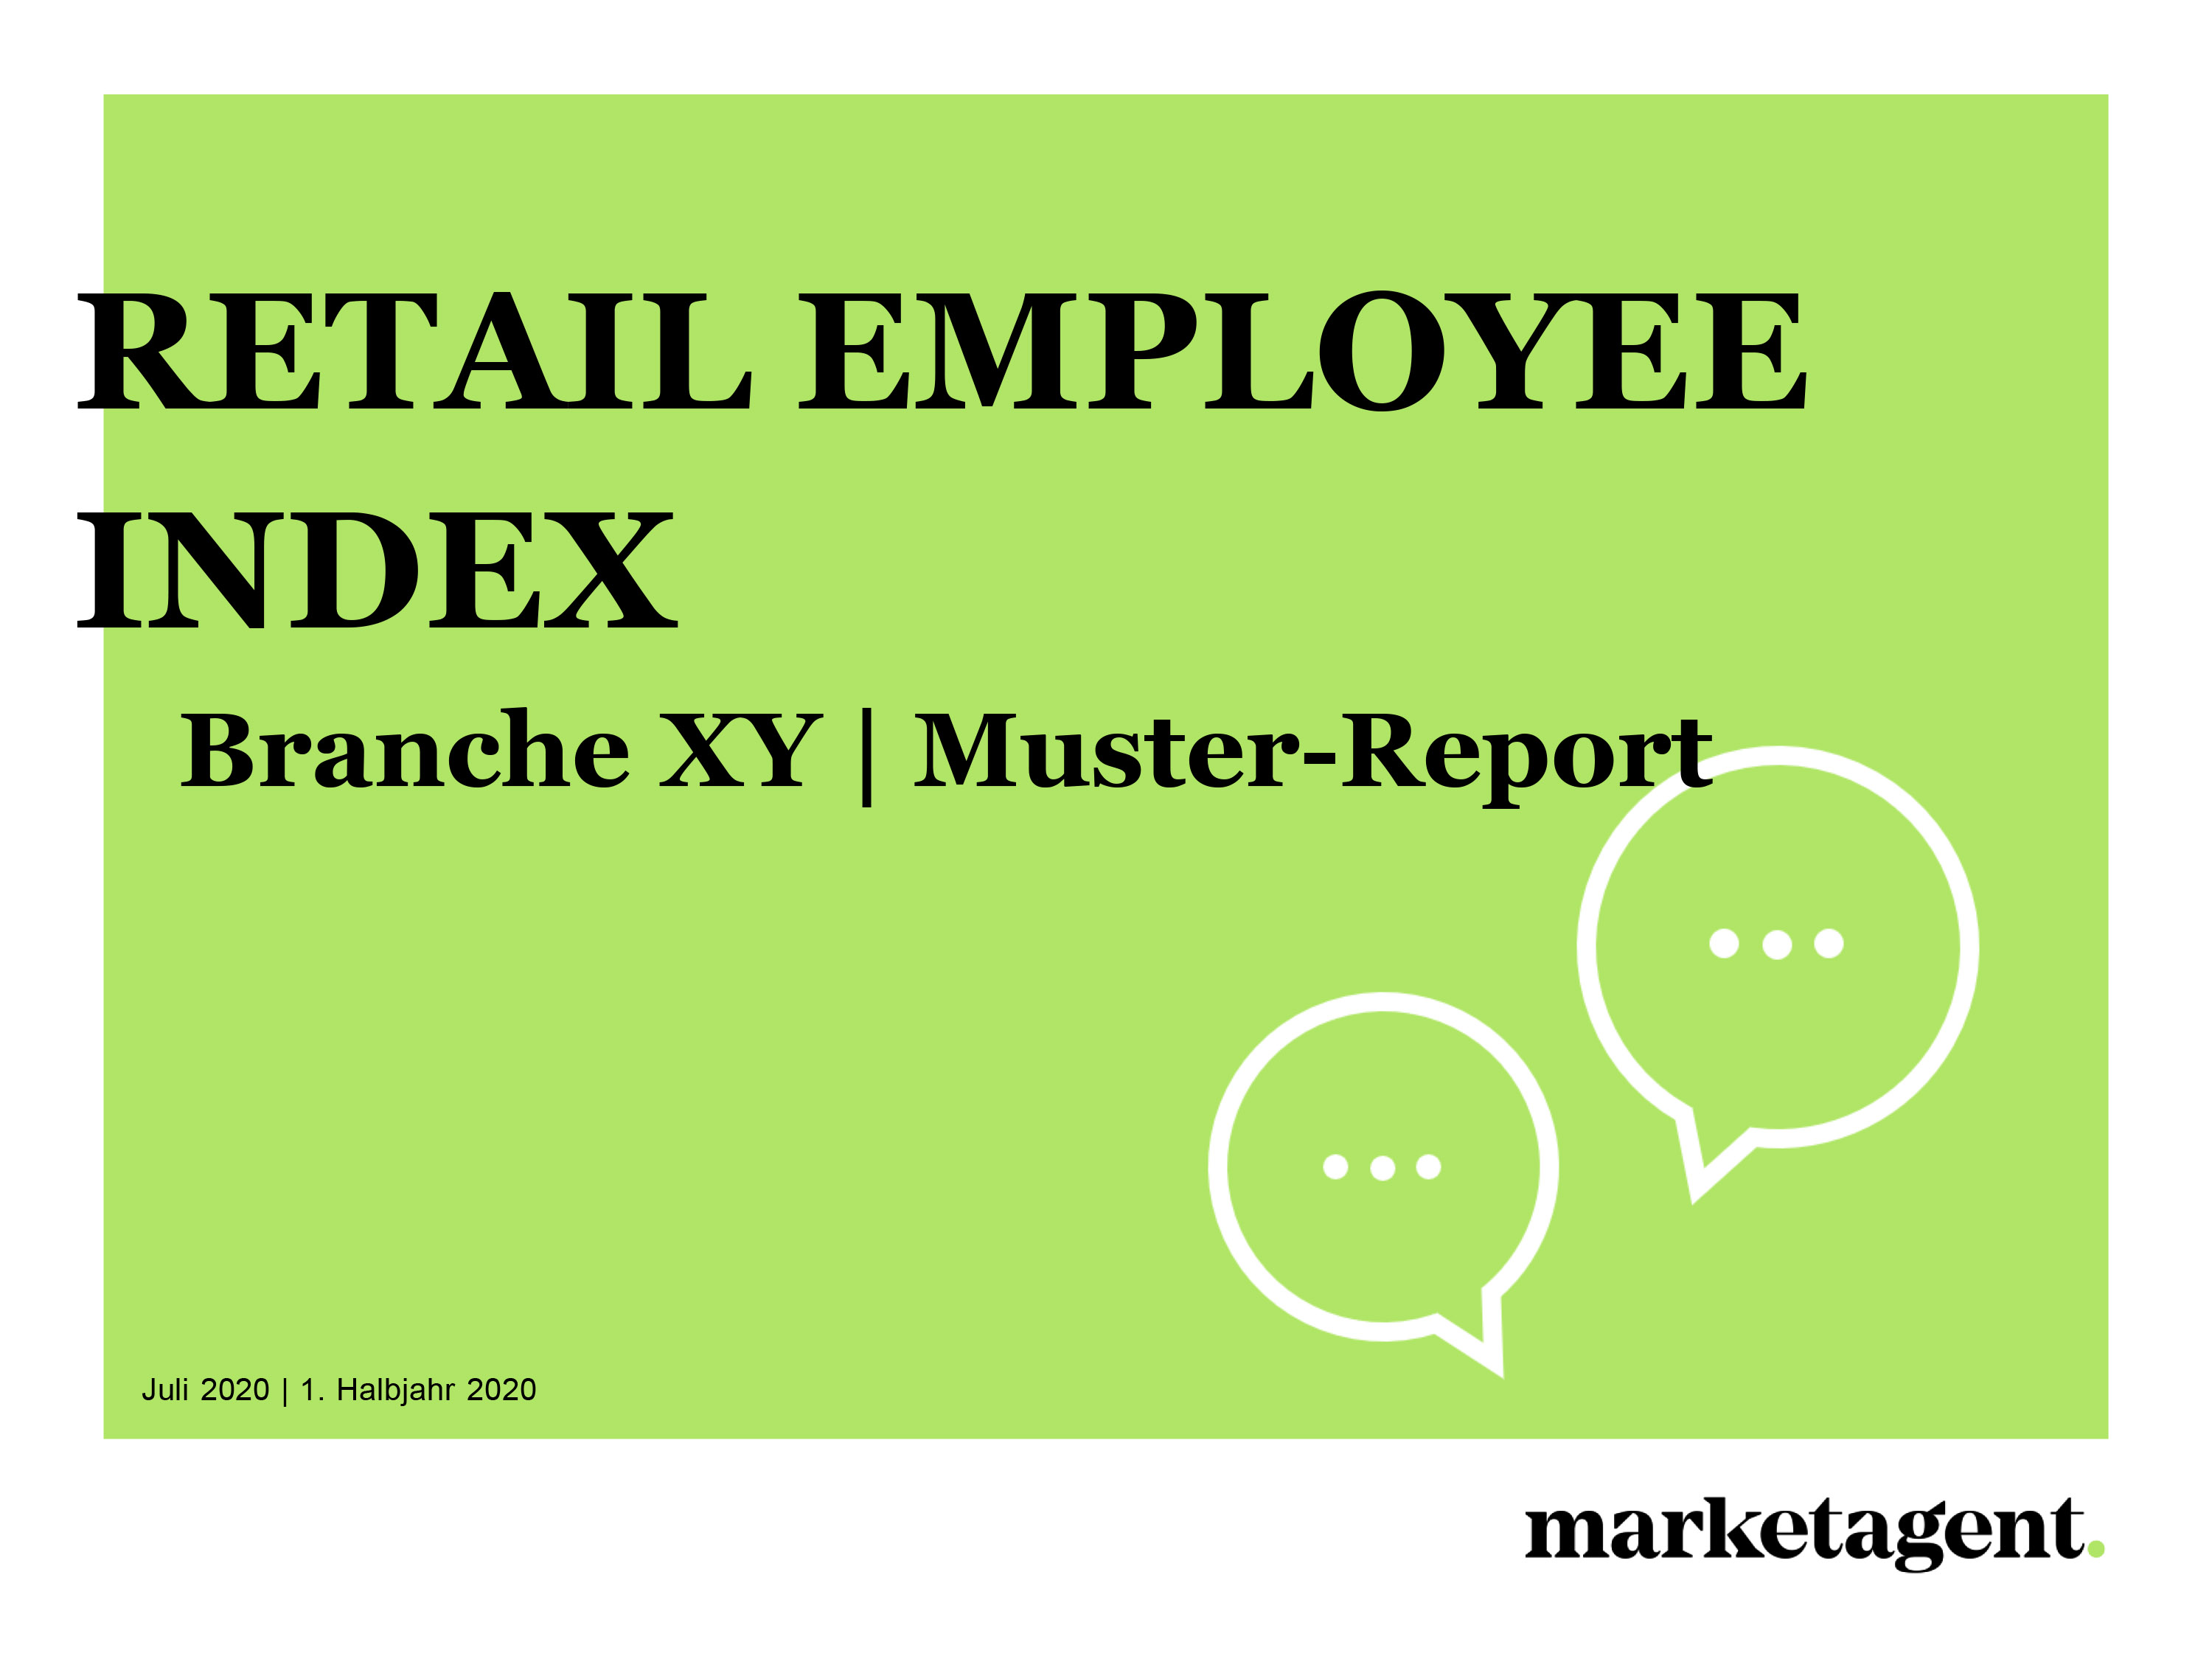 Muster-Report Retail Employee Index